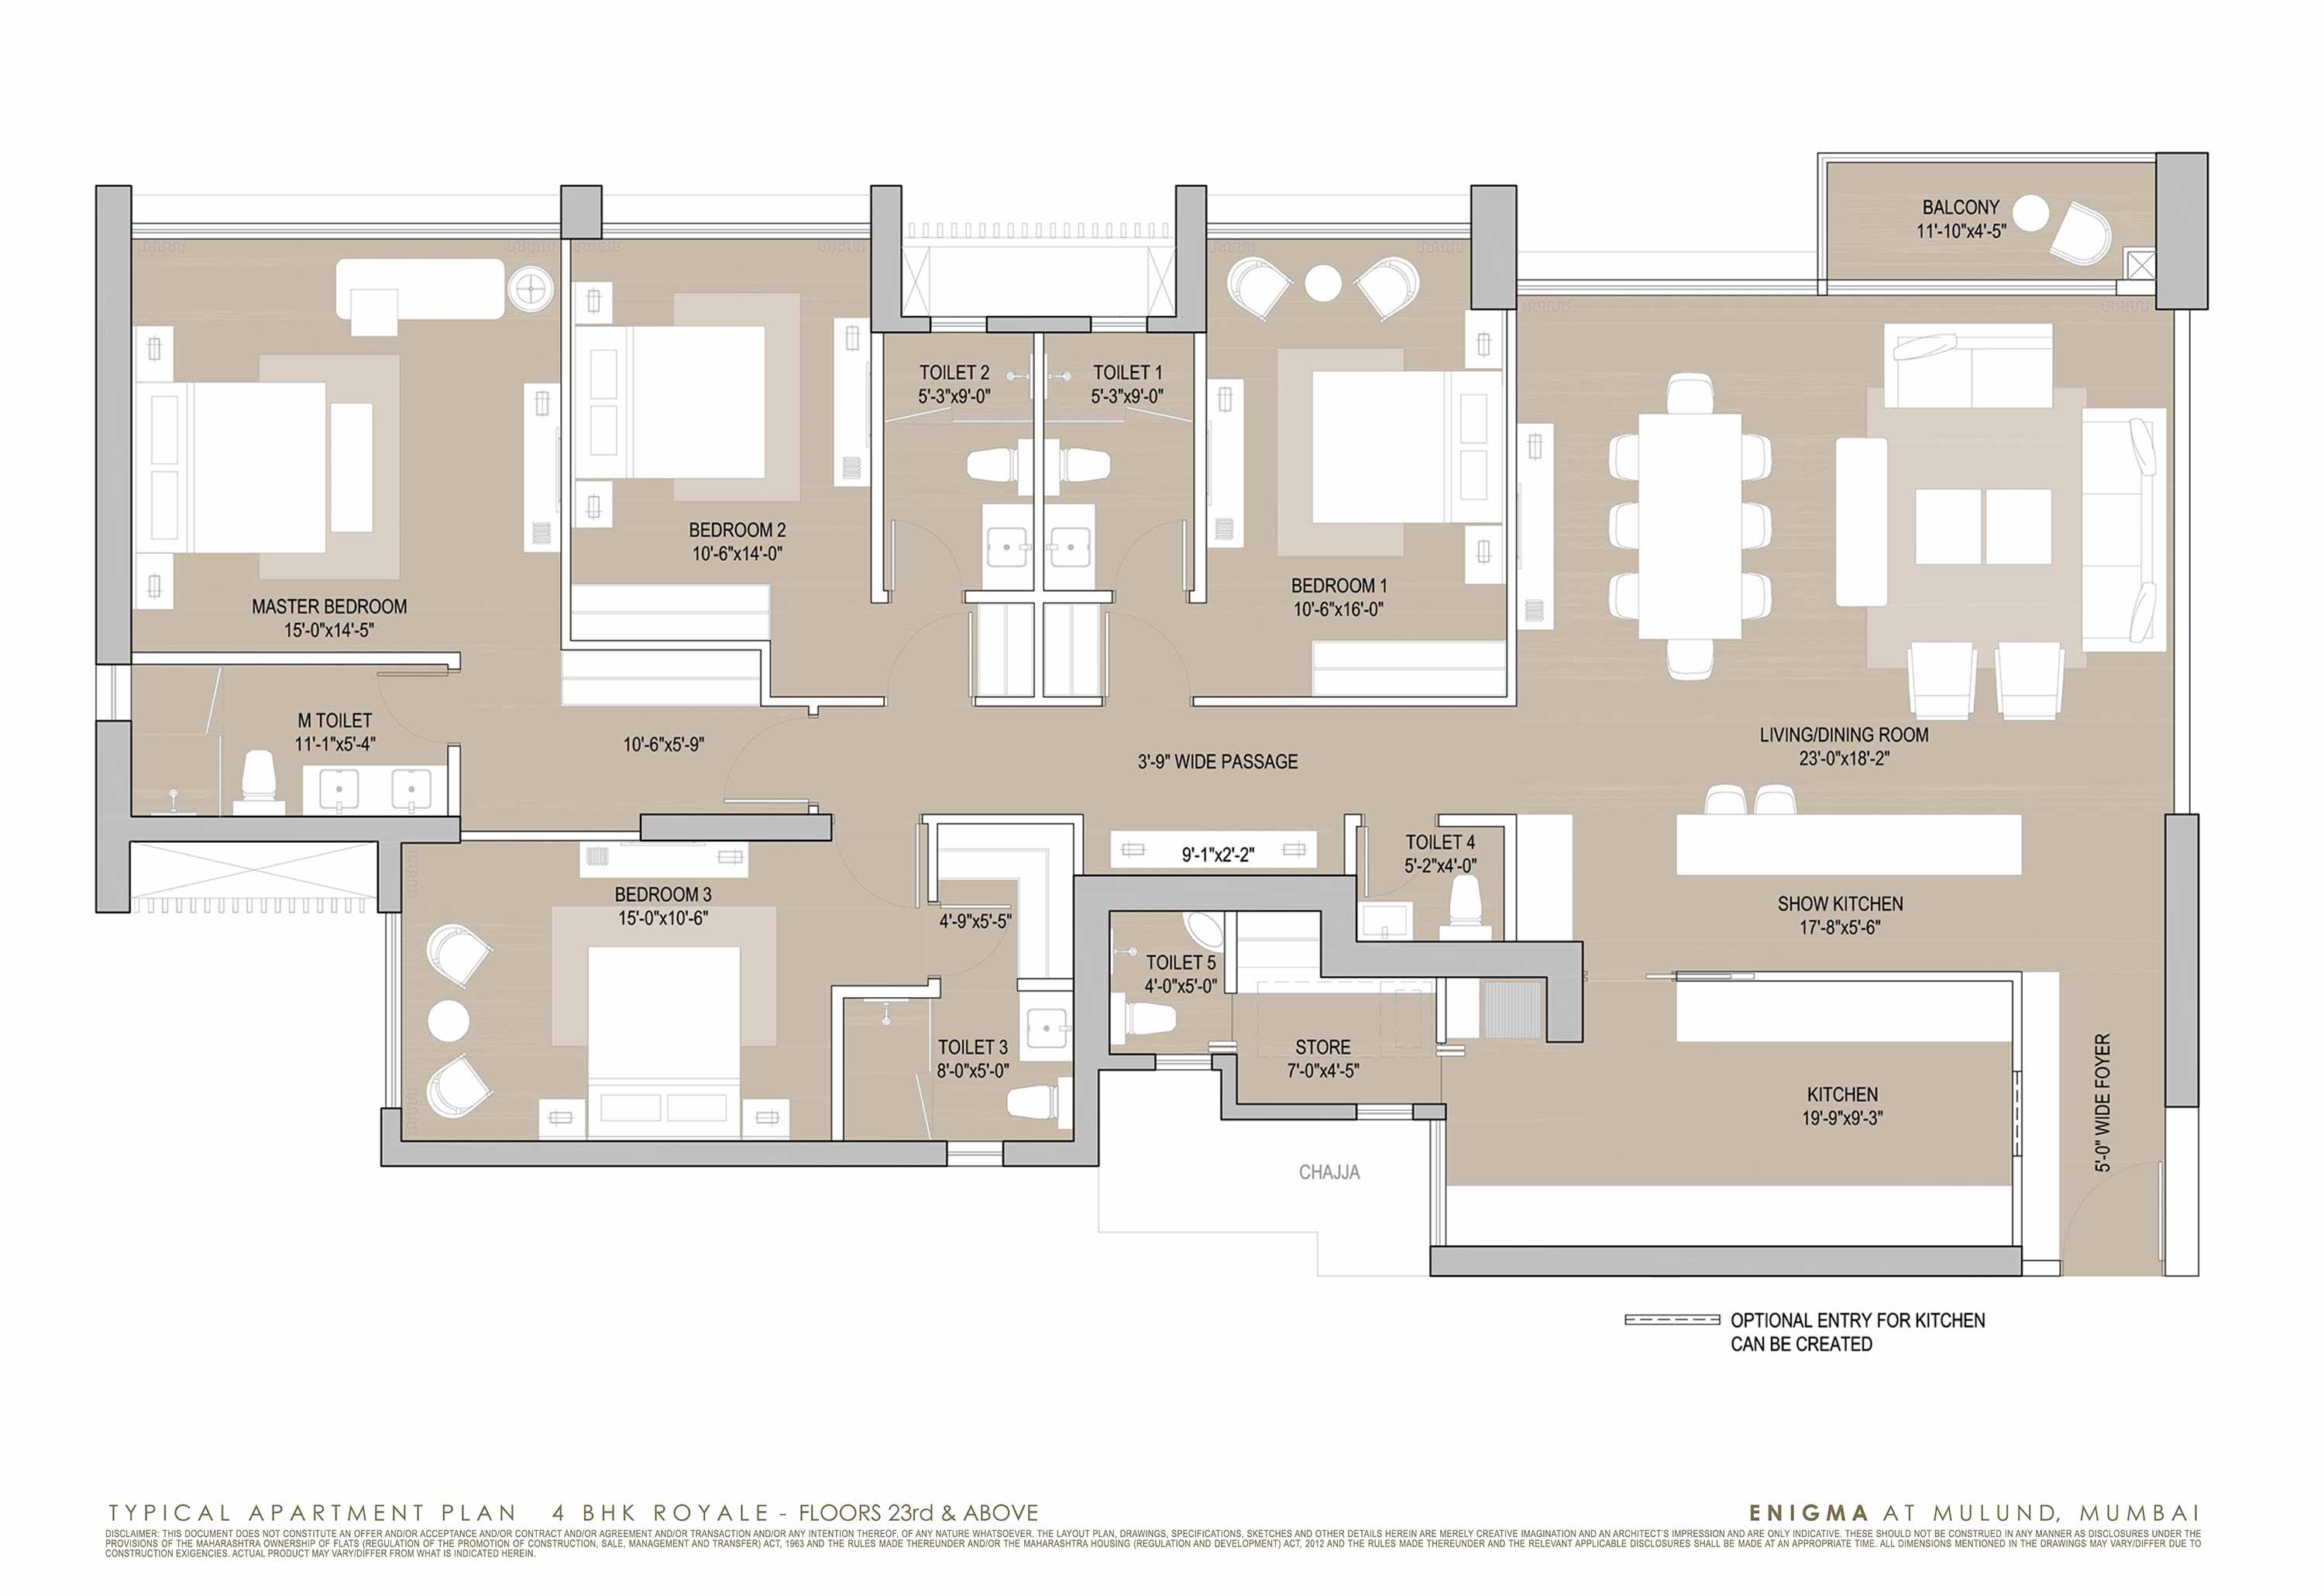 Luxury Penthouse Floor Plan 3 Amp 4 Bhk Luxury Apartments Property On Lbs Road Mulund